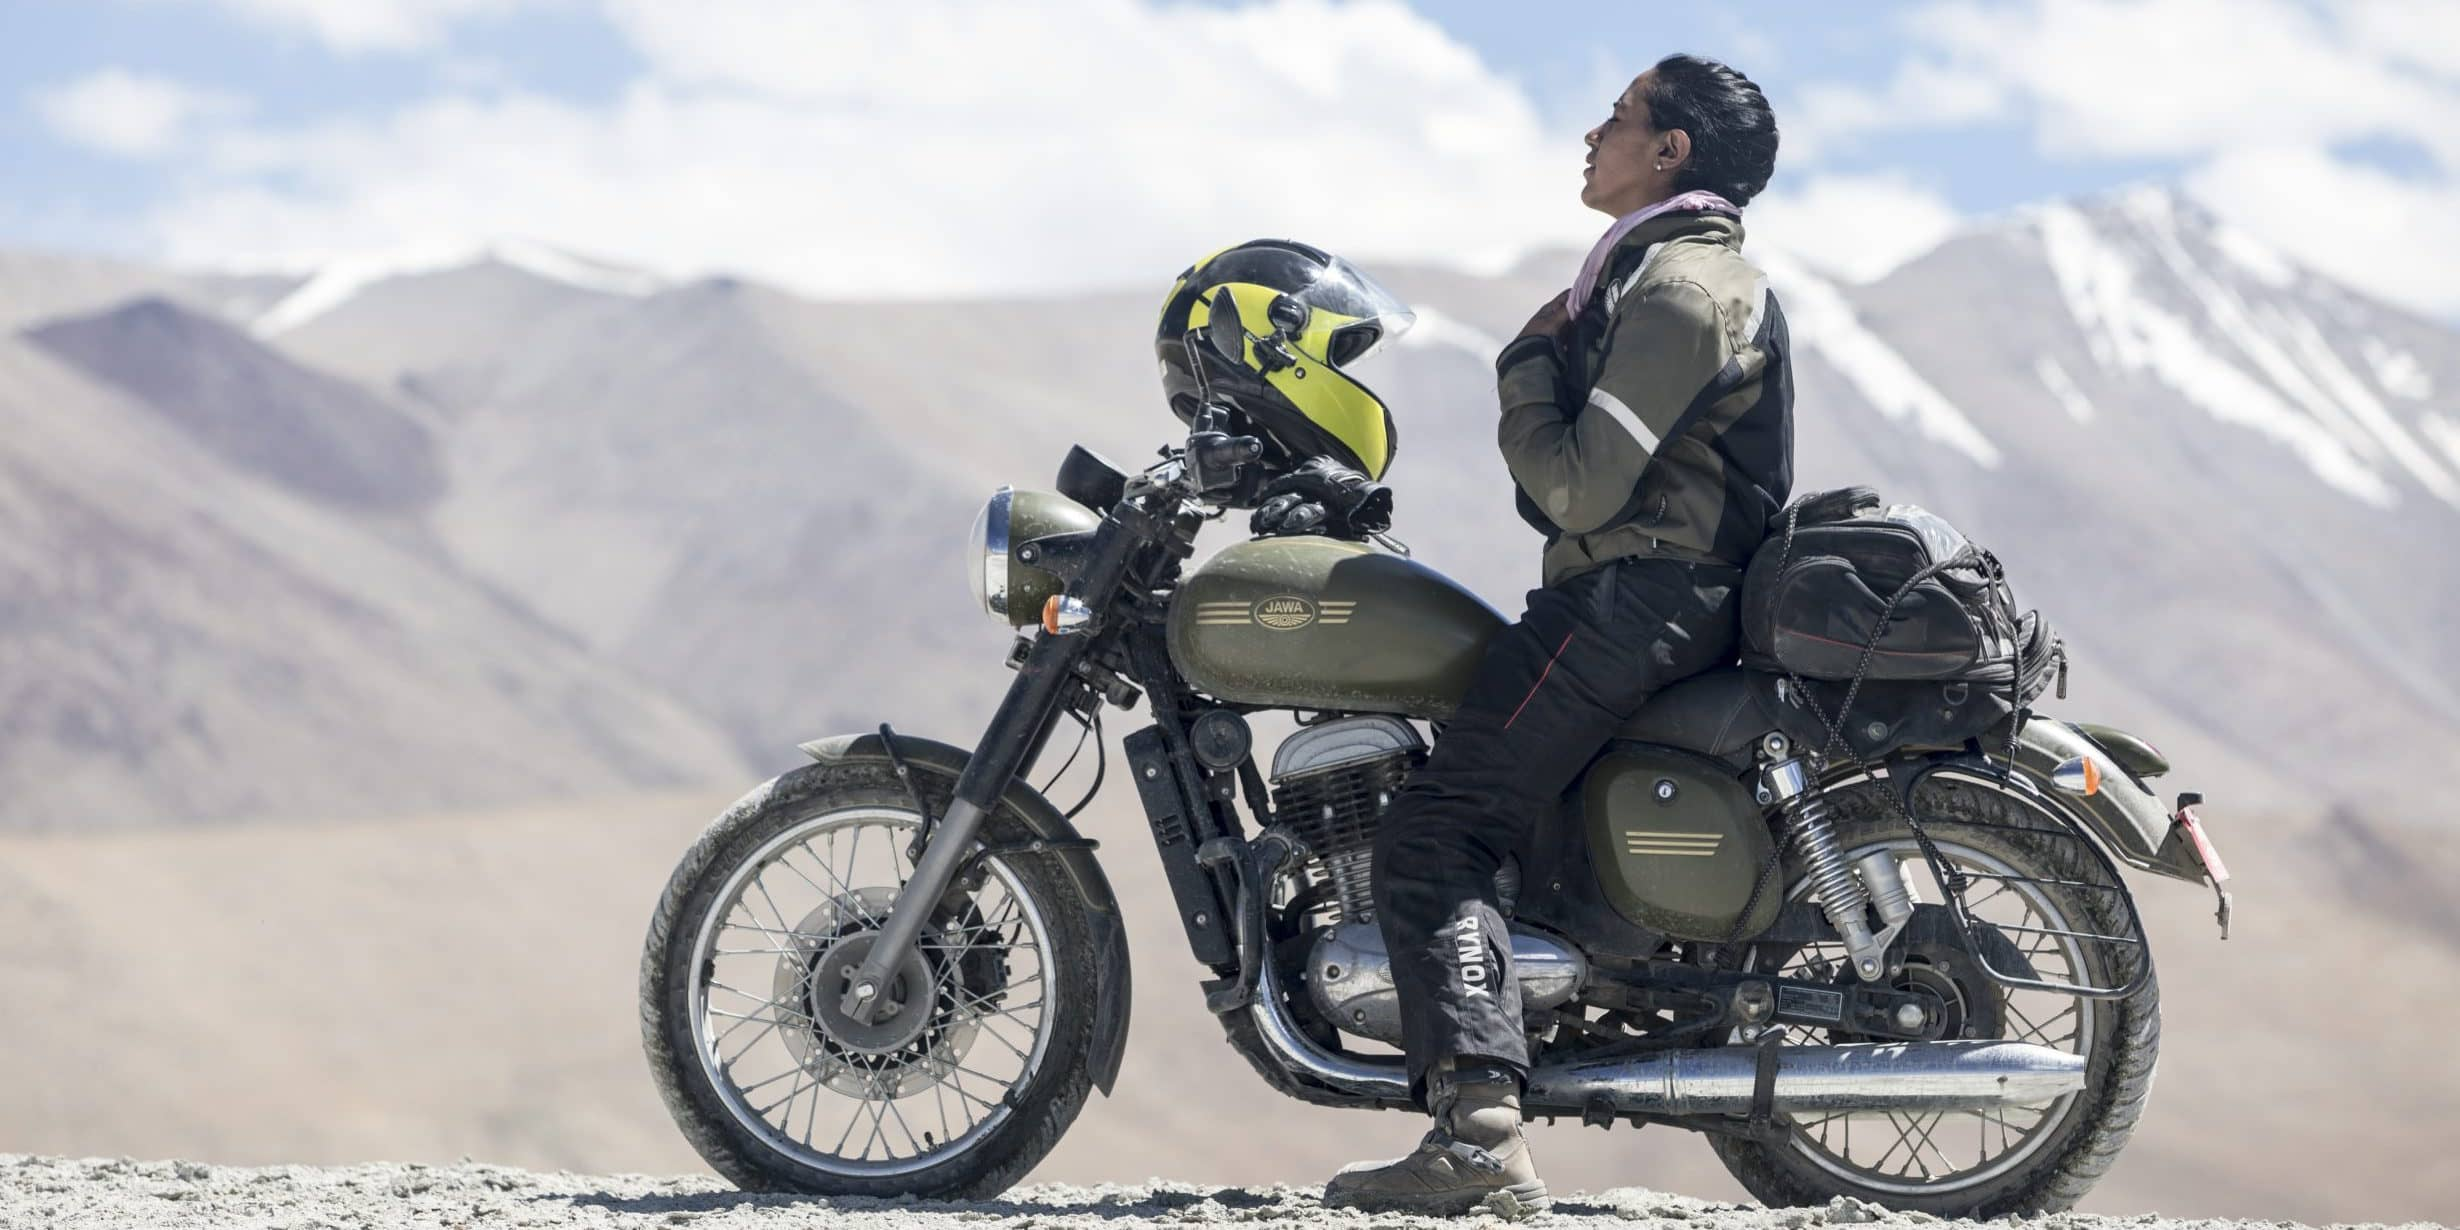 Candida Louis – An incredible story of a biker girl's solo trip from India to Australia